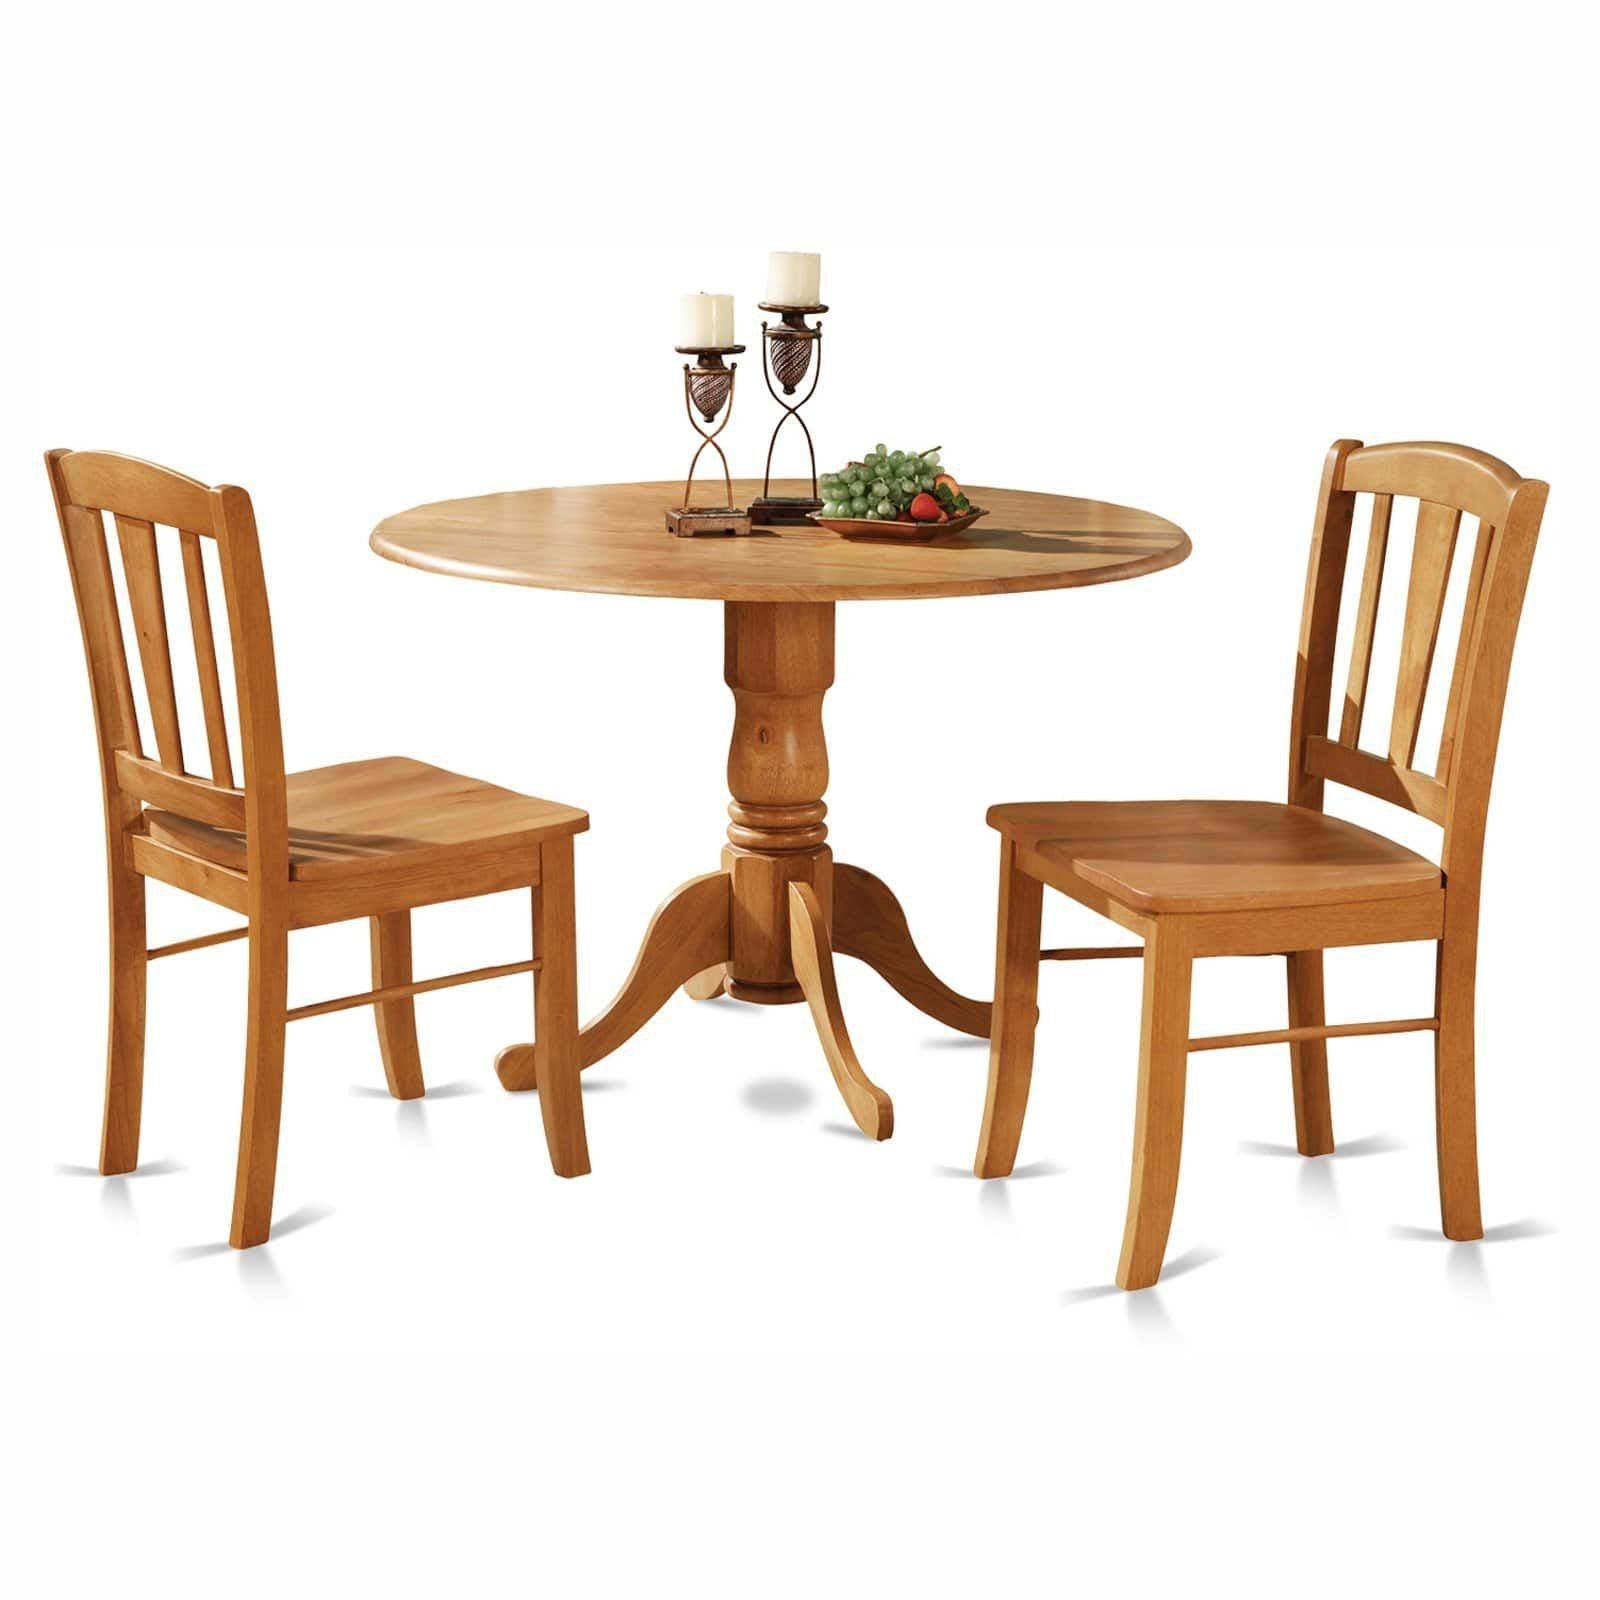 East West Furniture Dublin 3 Piece Drop Leaf Dining Table Set  Dining Table Sets At Hayneedle